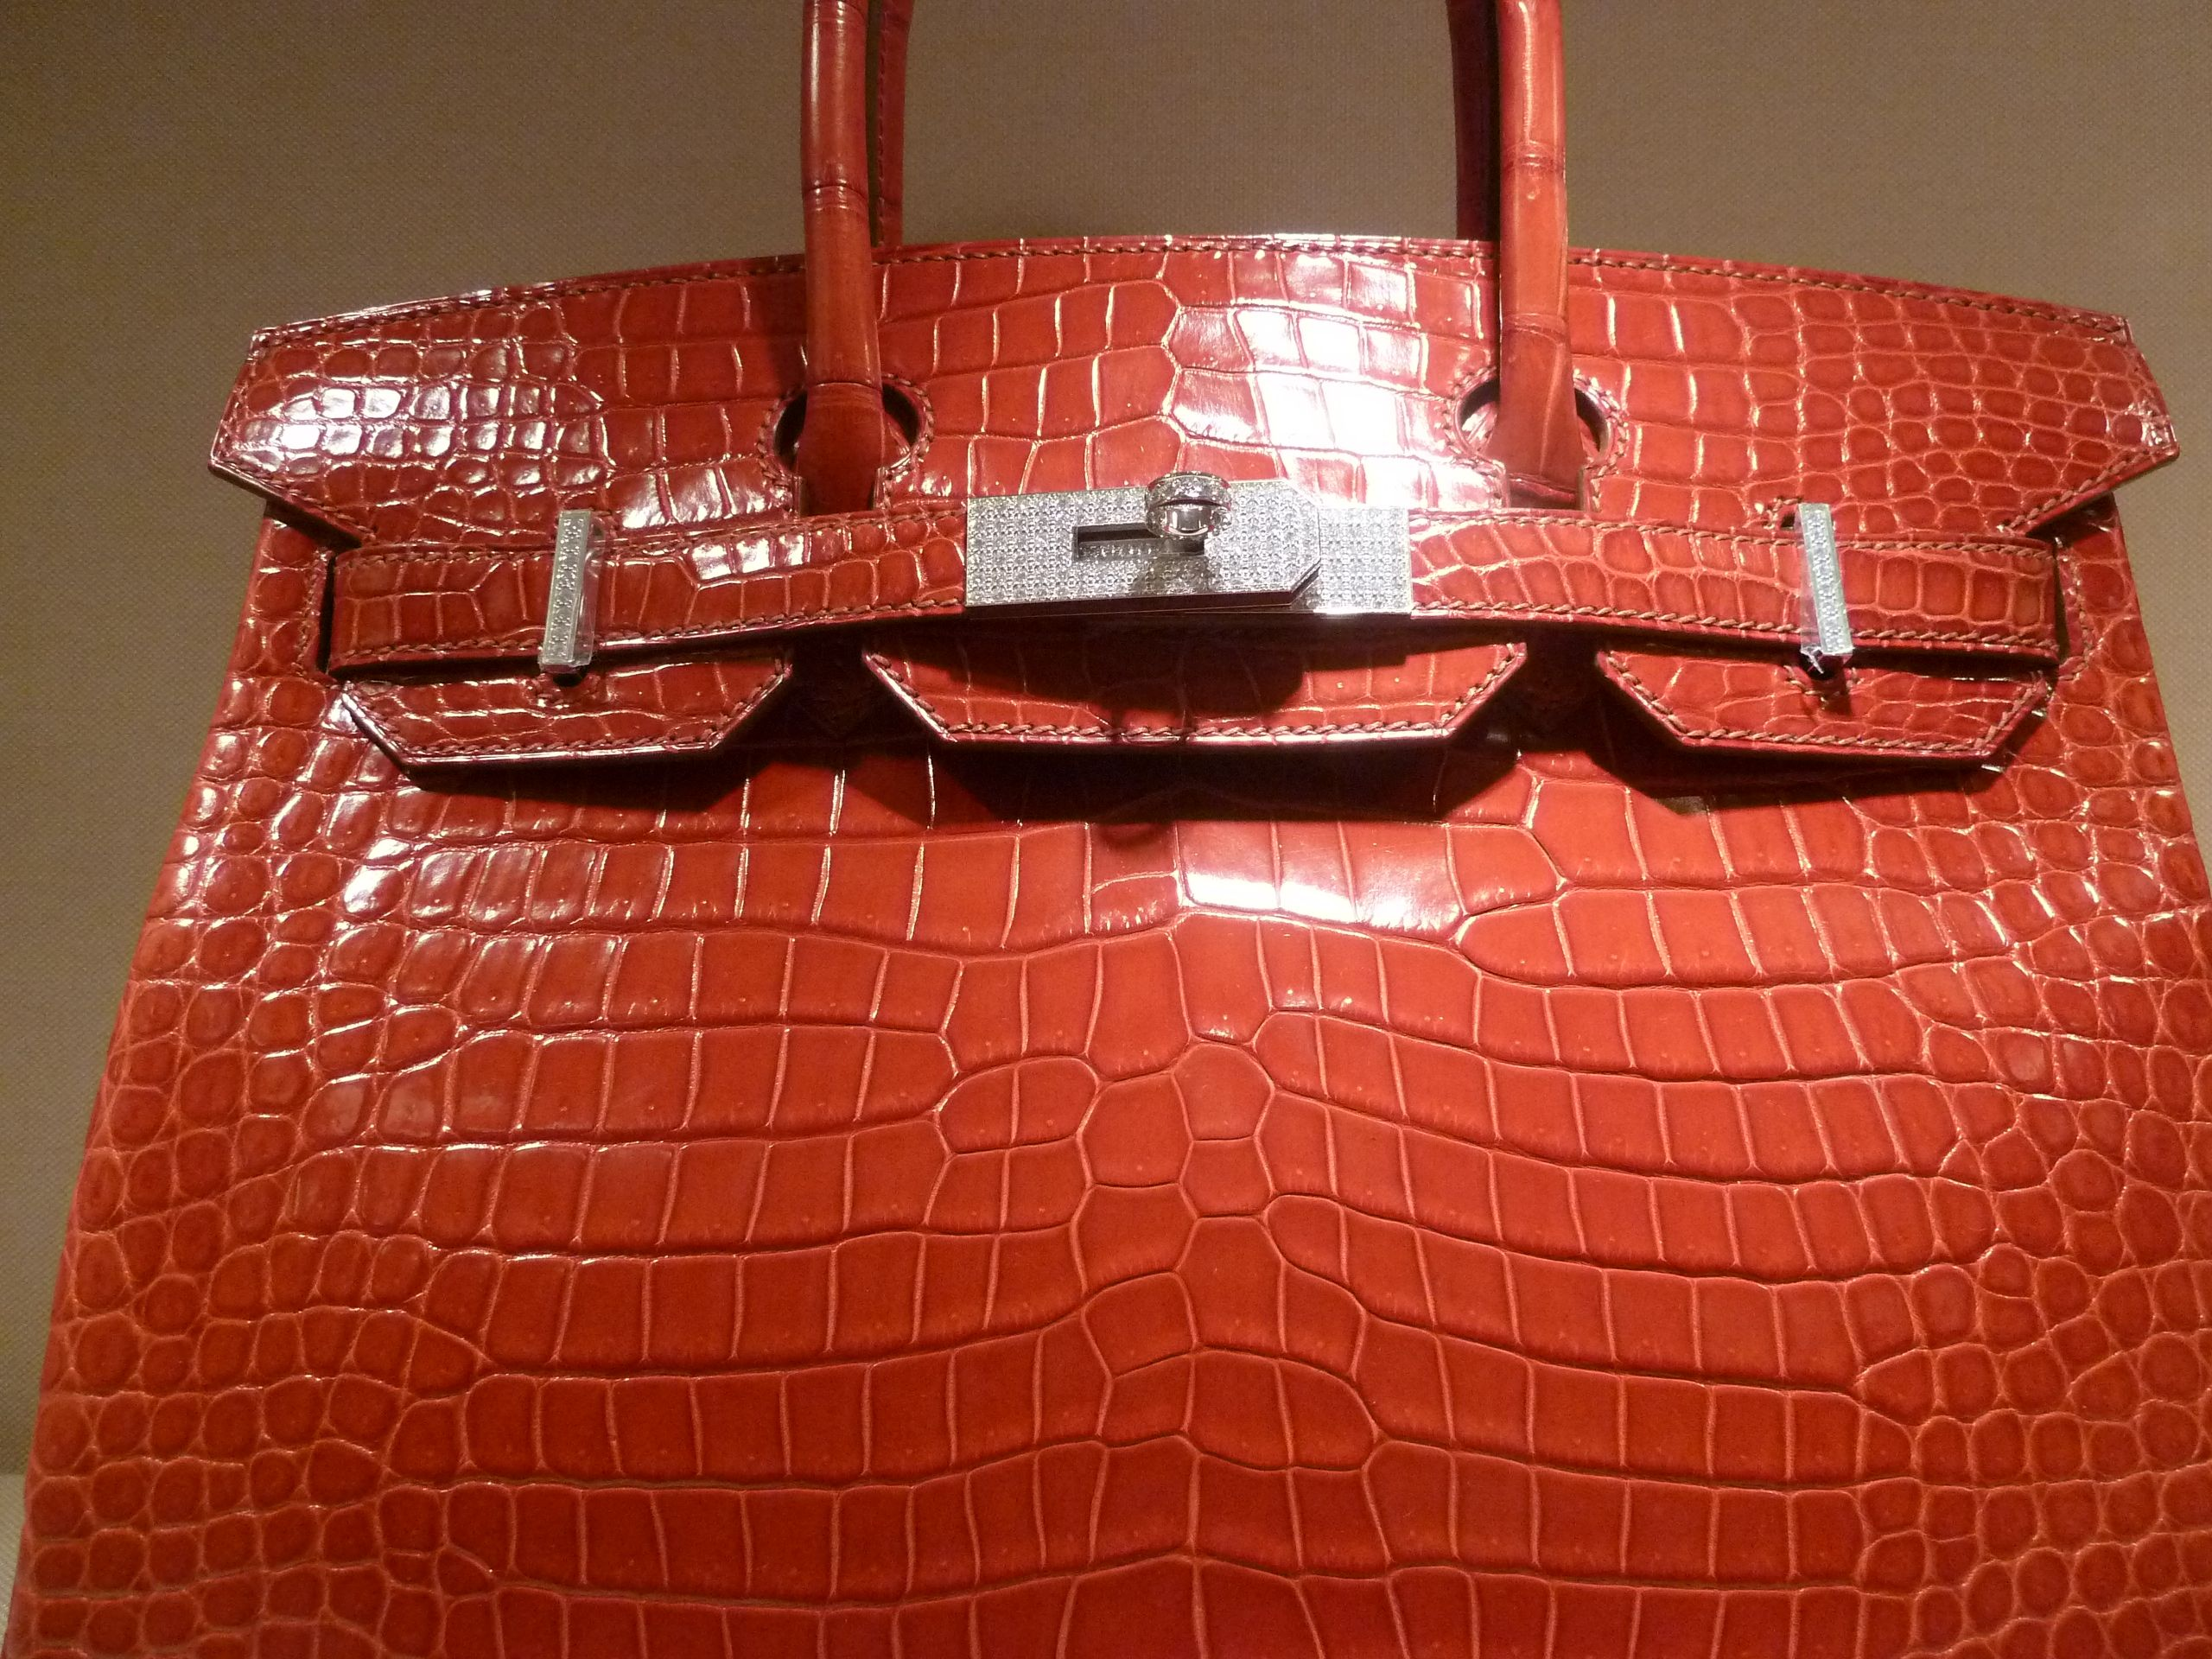 red hermes birkin bag - Birkin bag - Wikipedia, the free encyclopedia